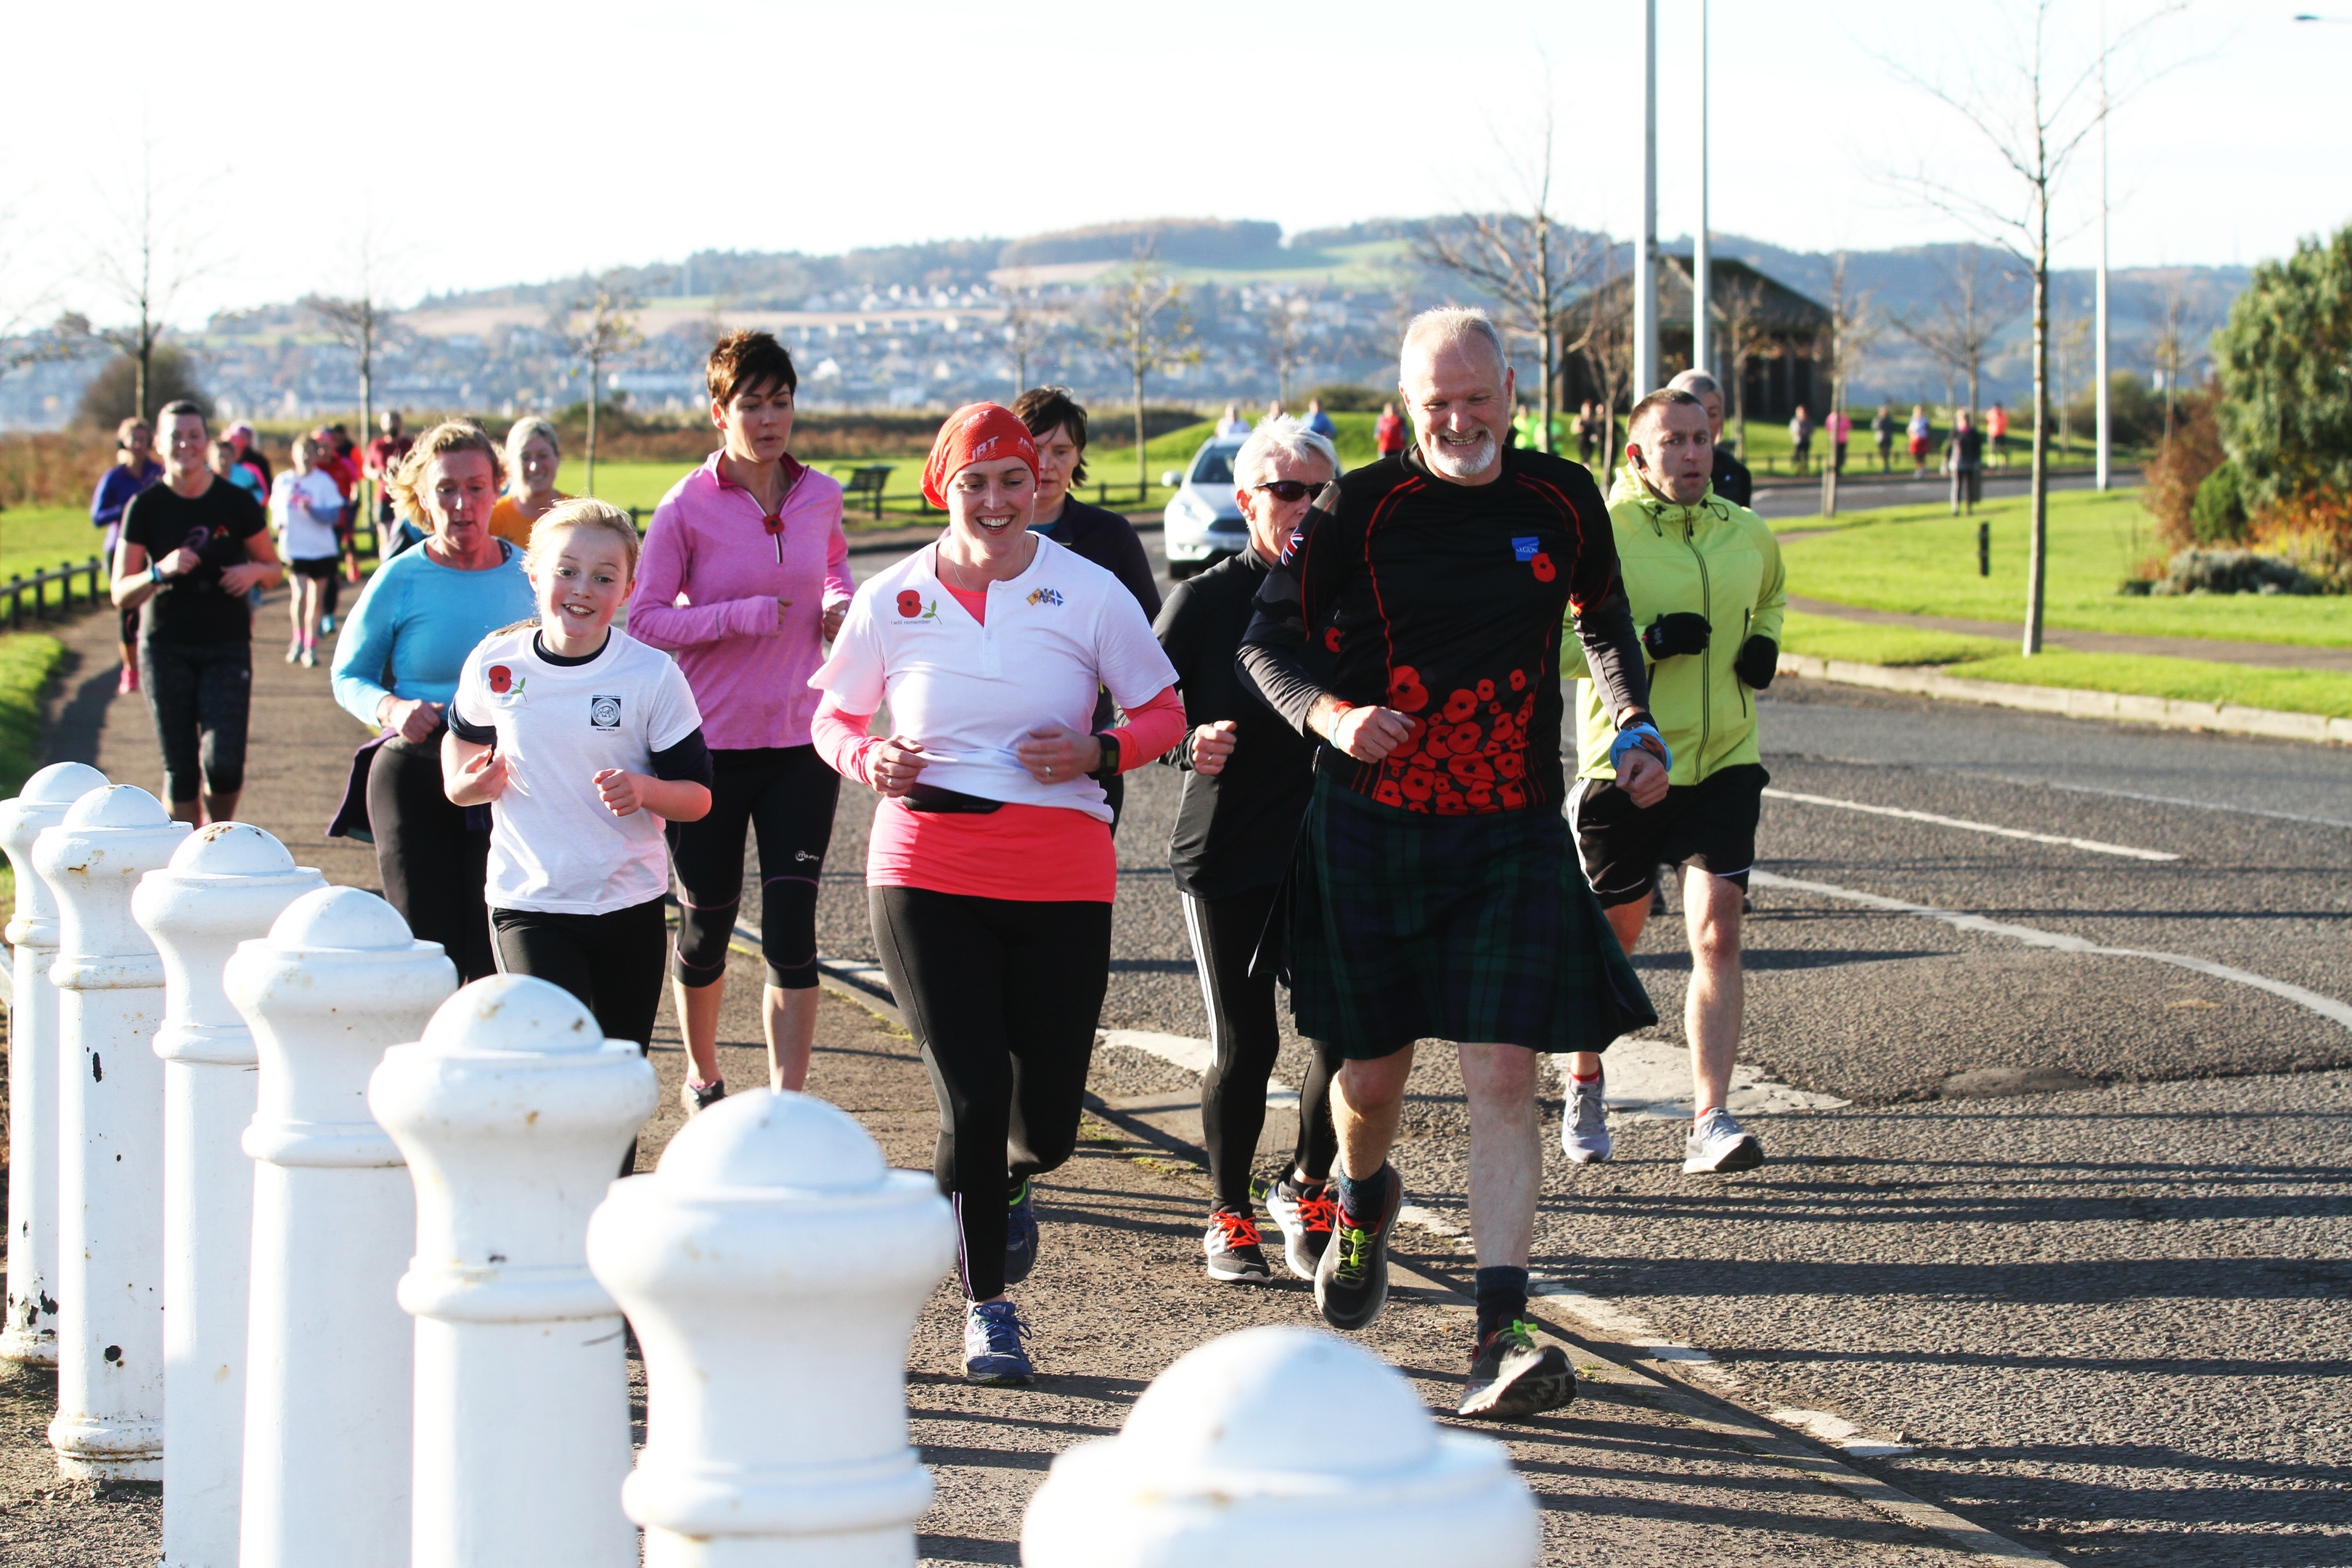 The Remembrance Day run had about 200 participants.